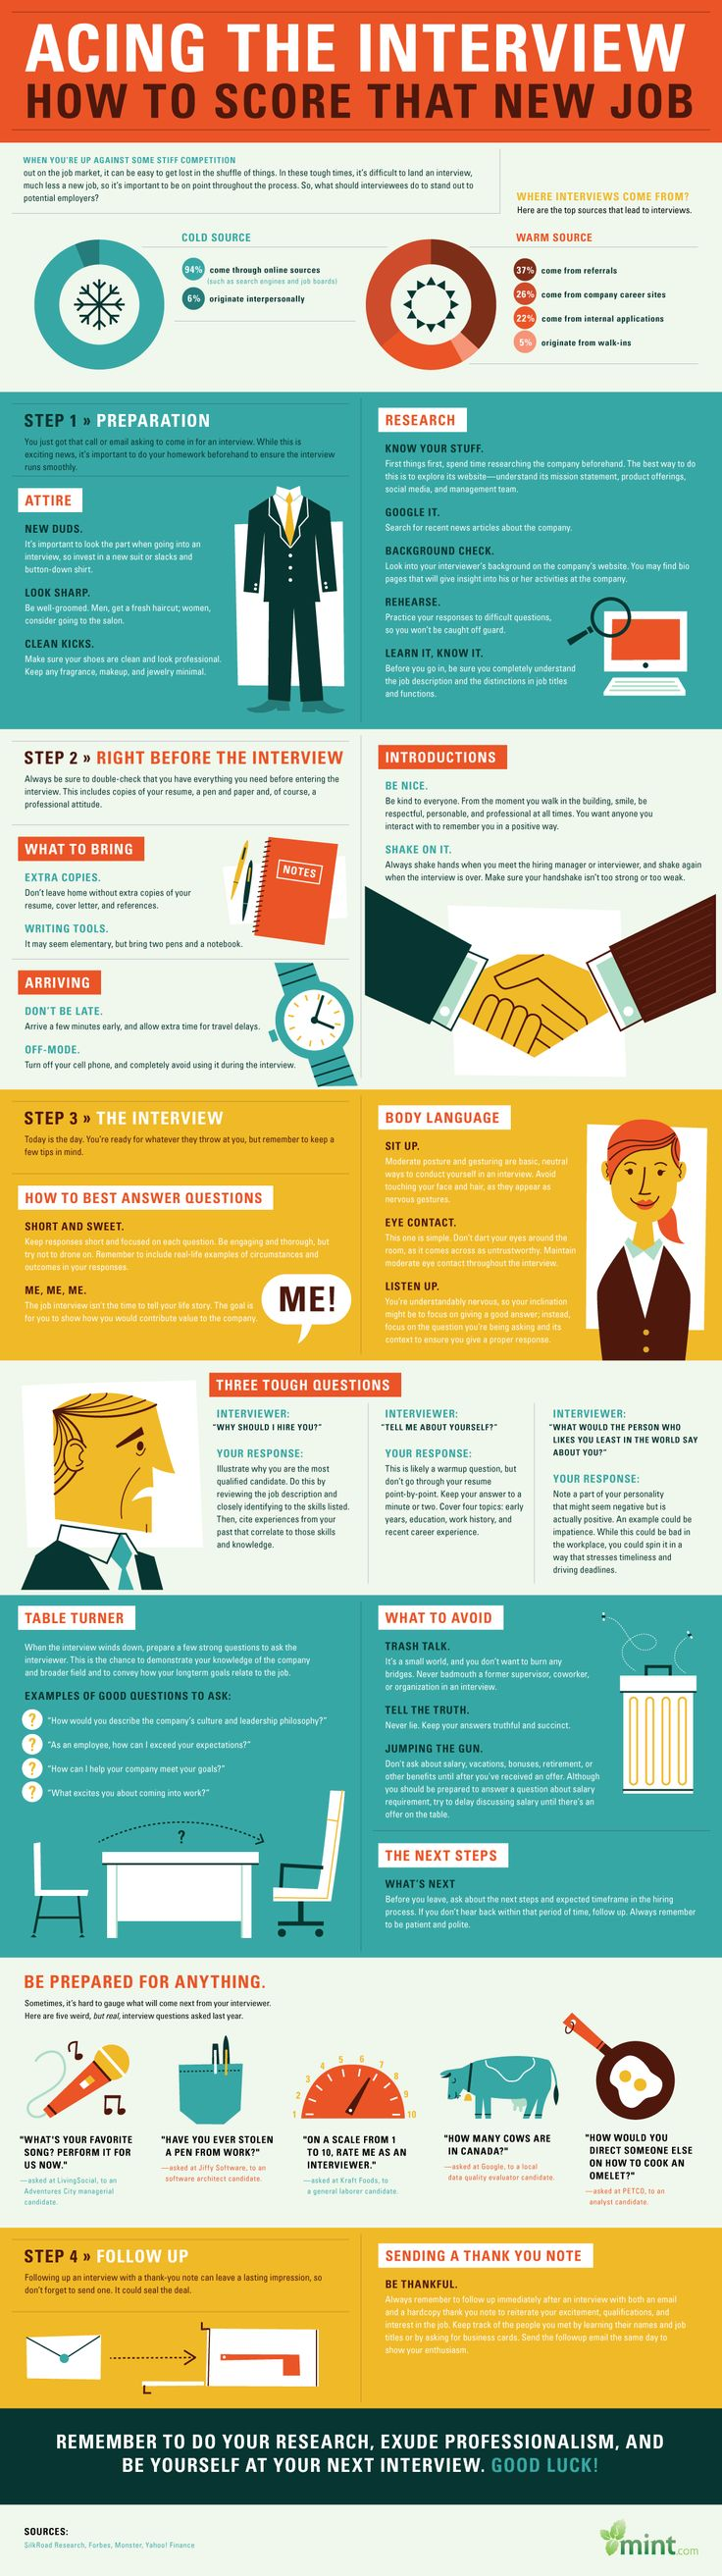 MintLife Blog | Personal Finance News & Advice | How to Ace a Job Interview: A Visual Guide to Landing a New Job Int...